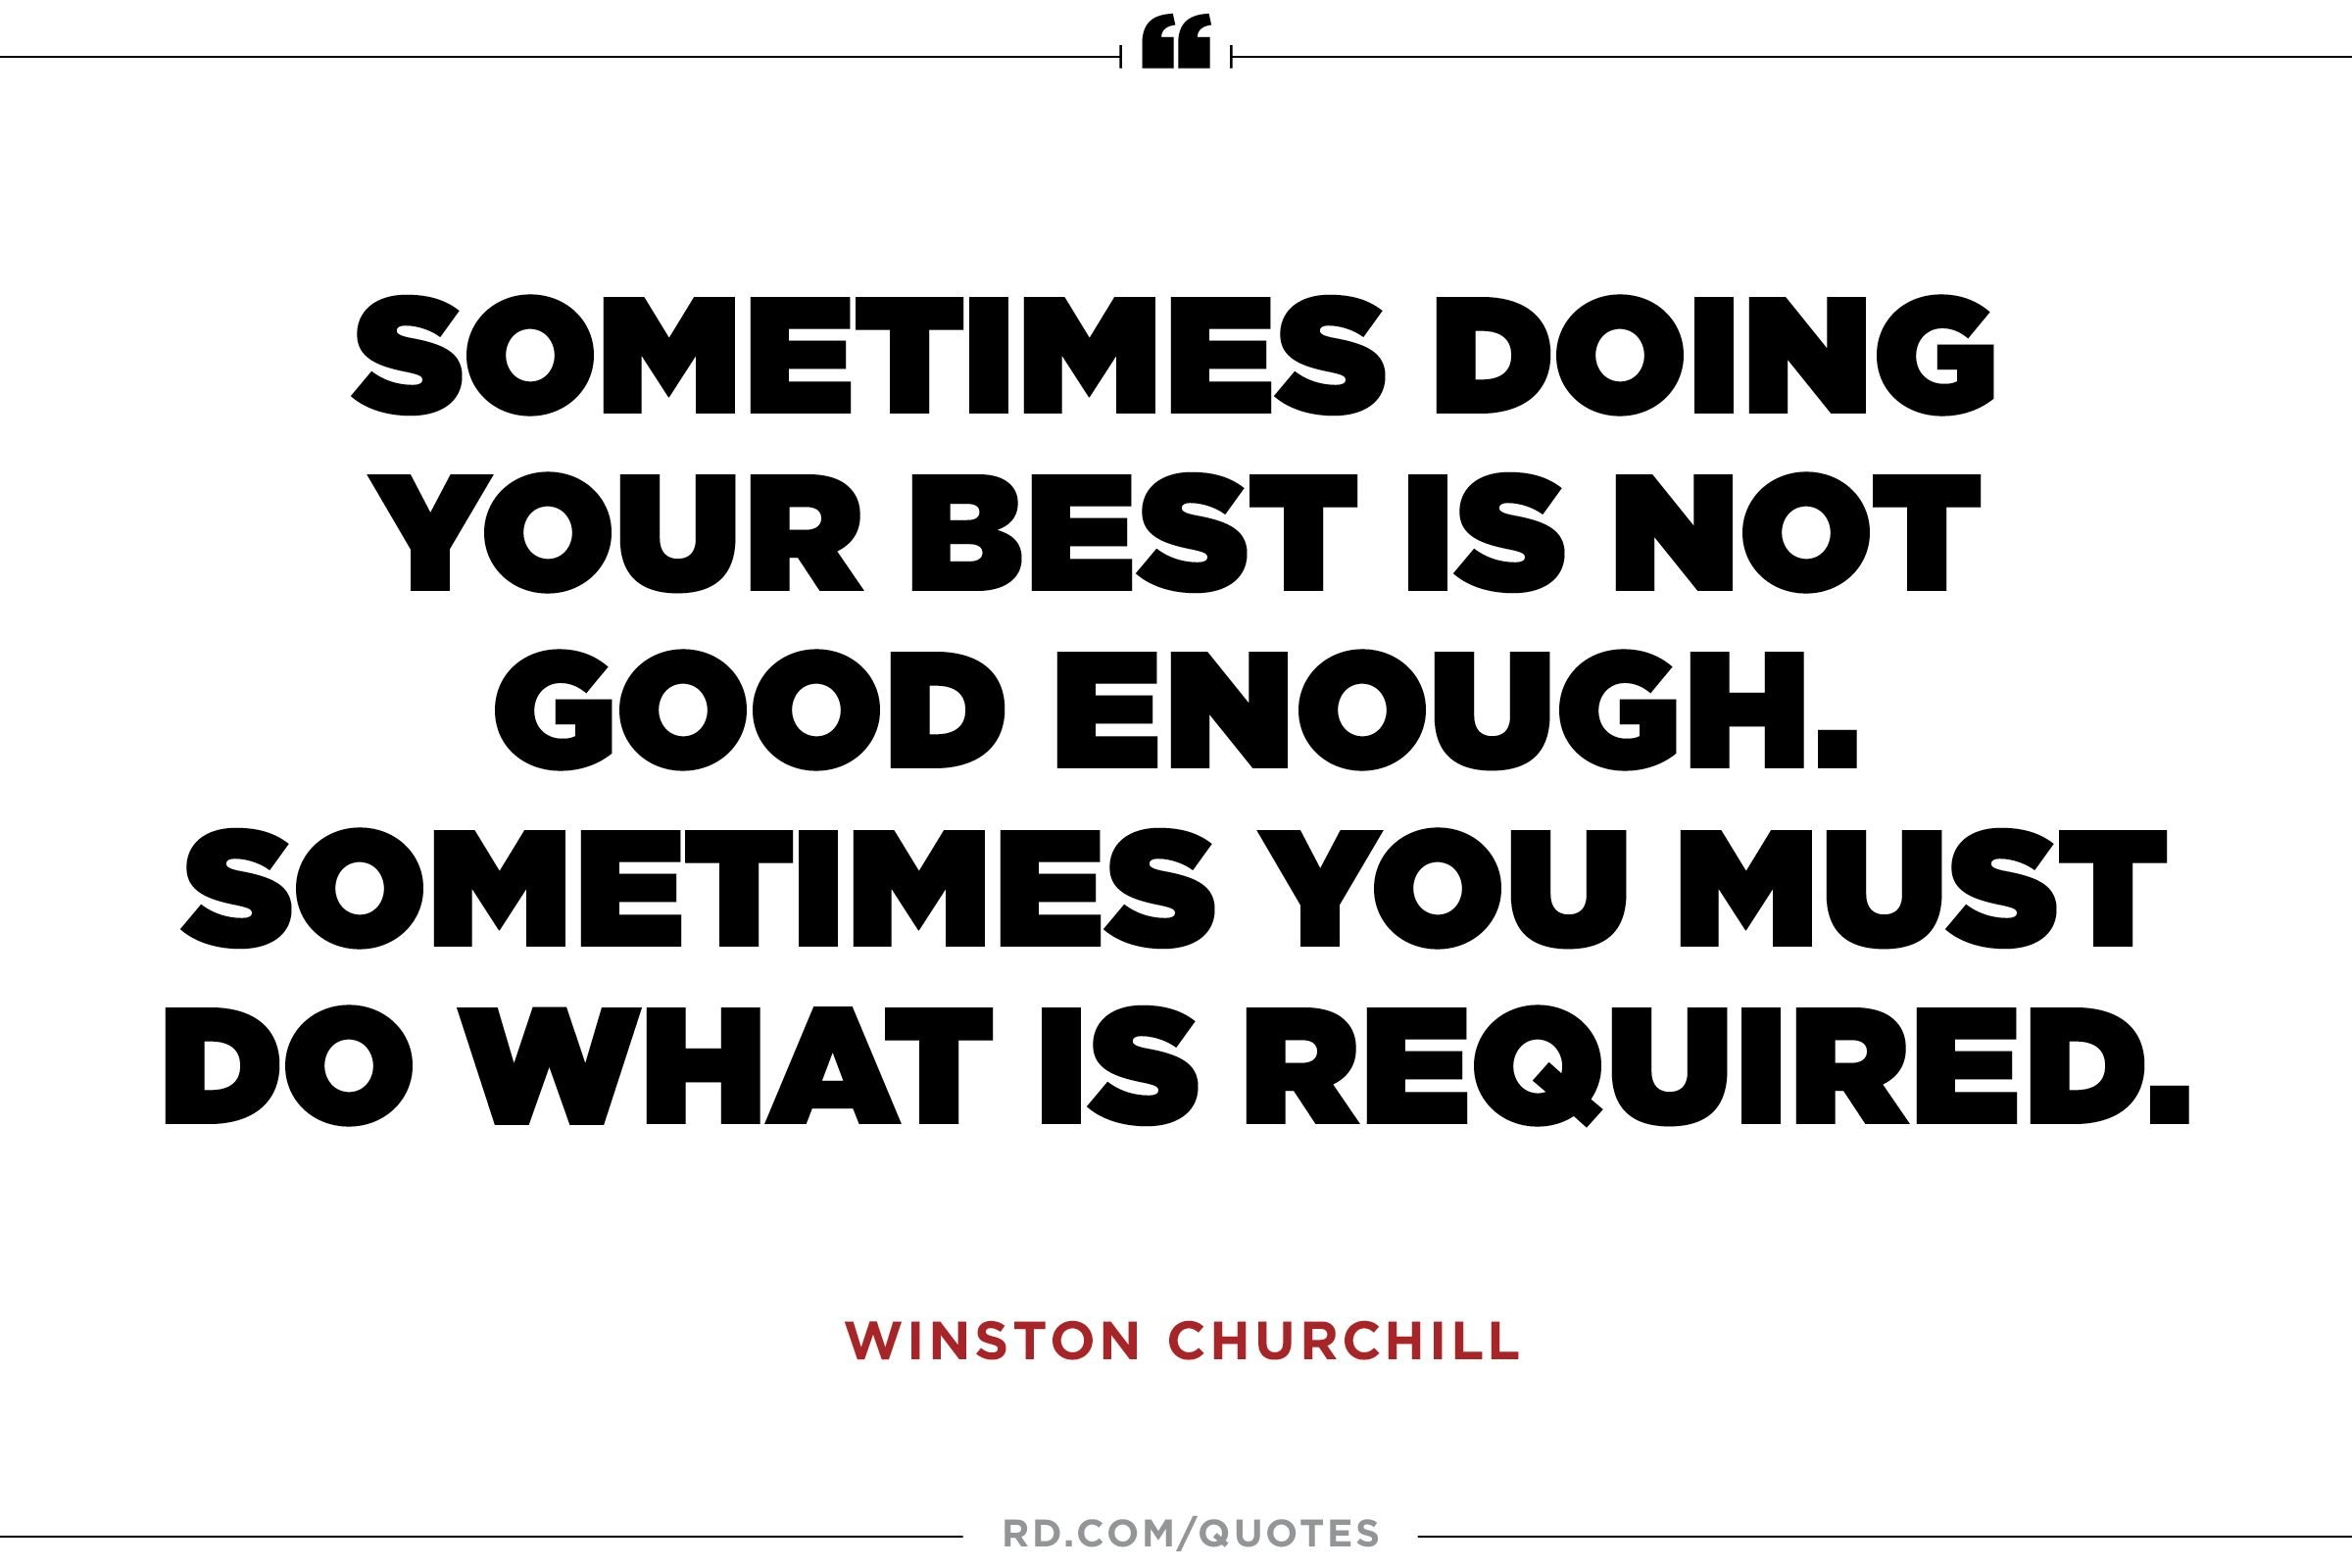 Quotes About Doing Your Best 10 Winston Churchill Quotes That Get You To The Corner Office